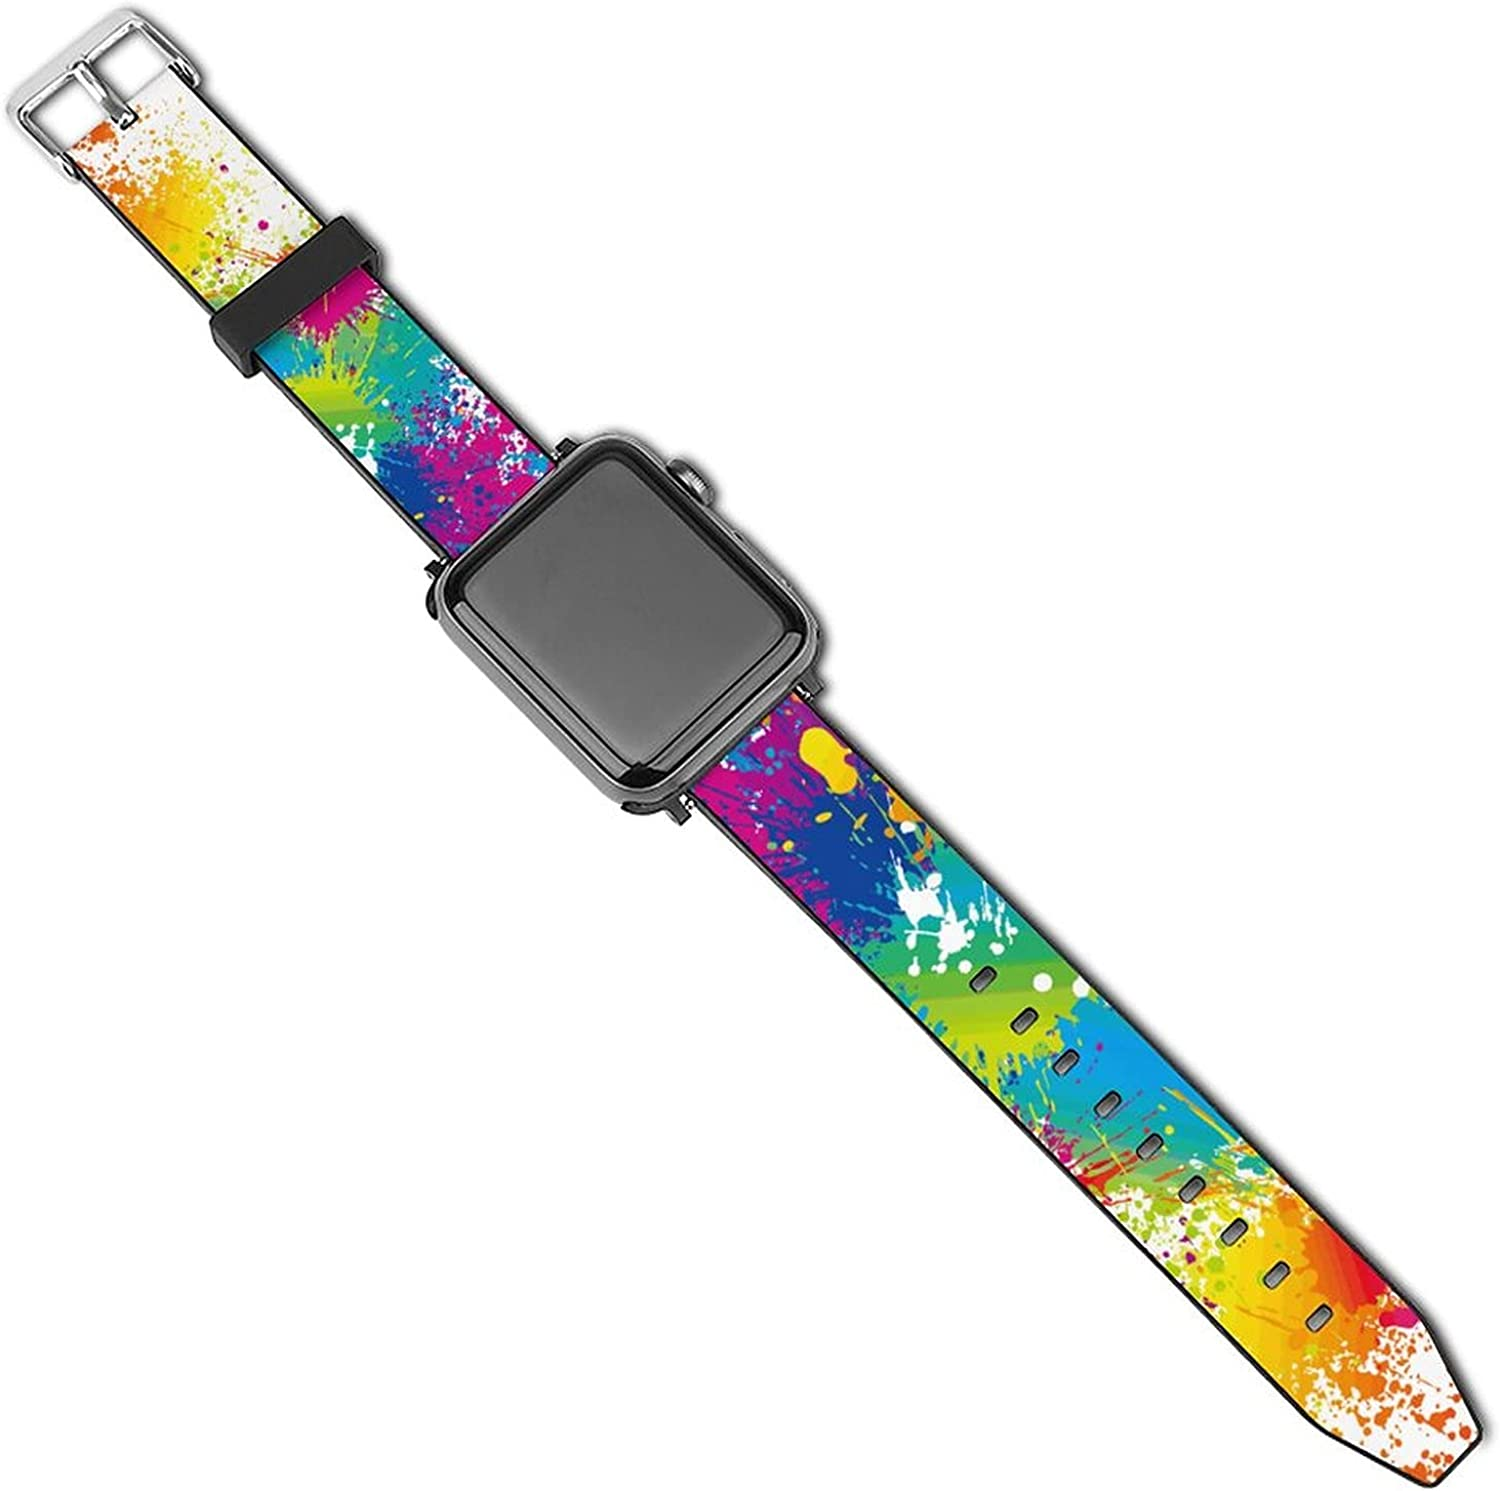 Sport Bands Compatible with Apple Watch Band Sport Bands Compatible with Apple Watch Band 38mm 40mm 42mm 44mm , iWatch 5 4 3 2 1 Series Leather Printed Strap Soft PU Watch Bands